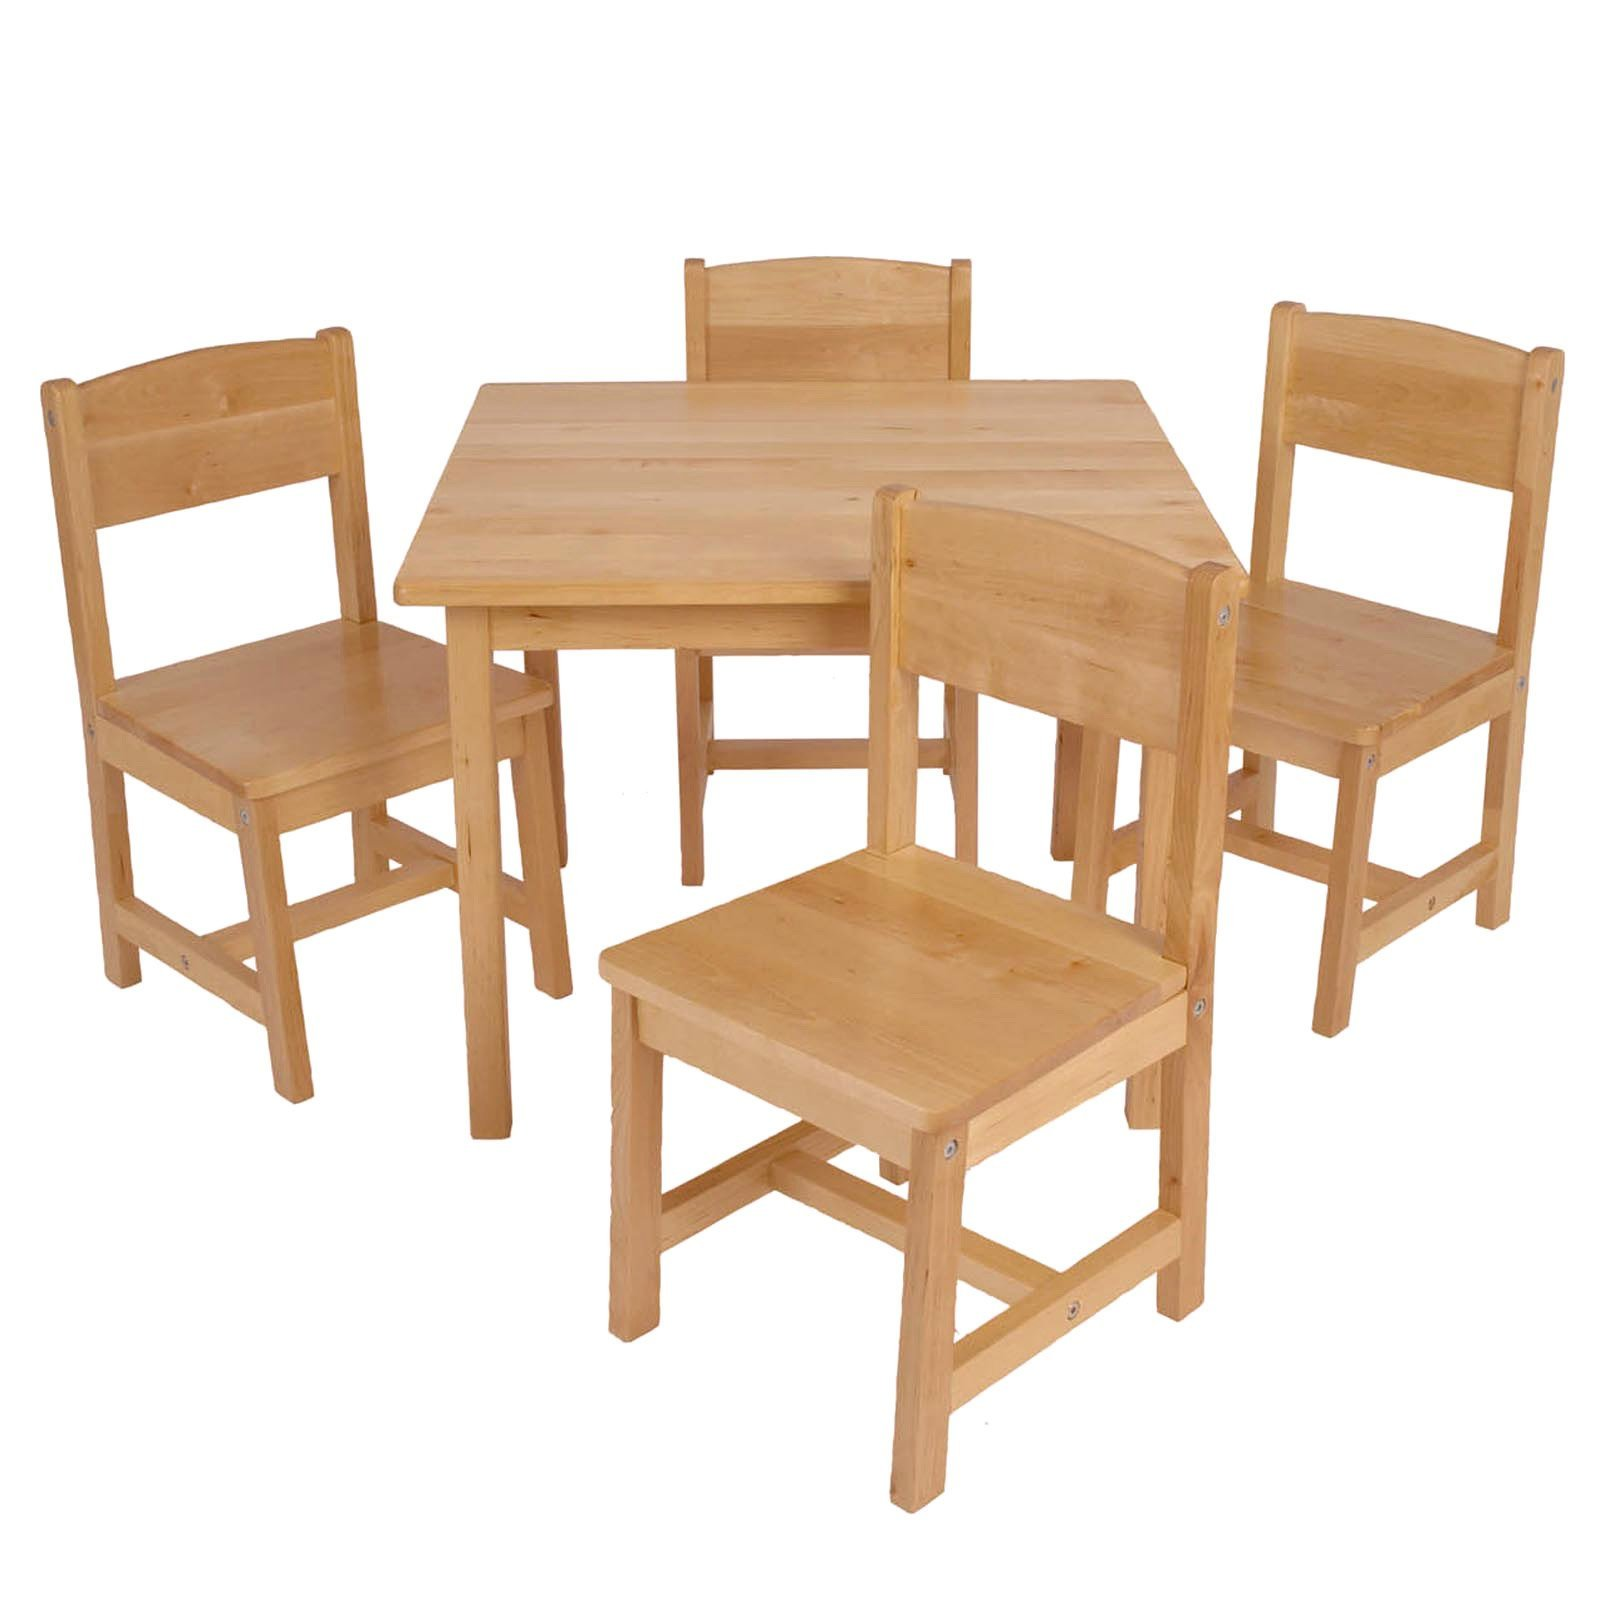 Kids farmhouse table children 5 piece sturdy wooden wood for Wooden kids table